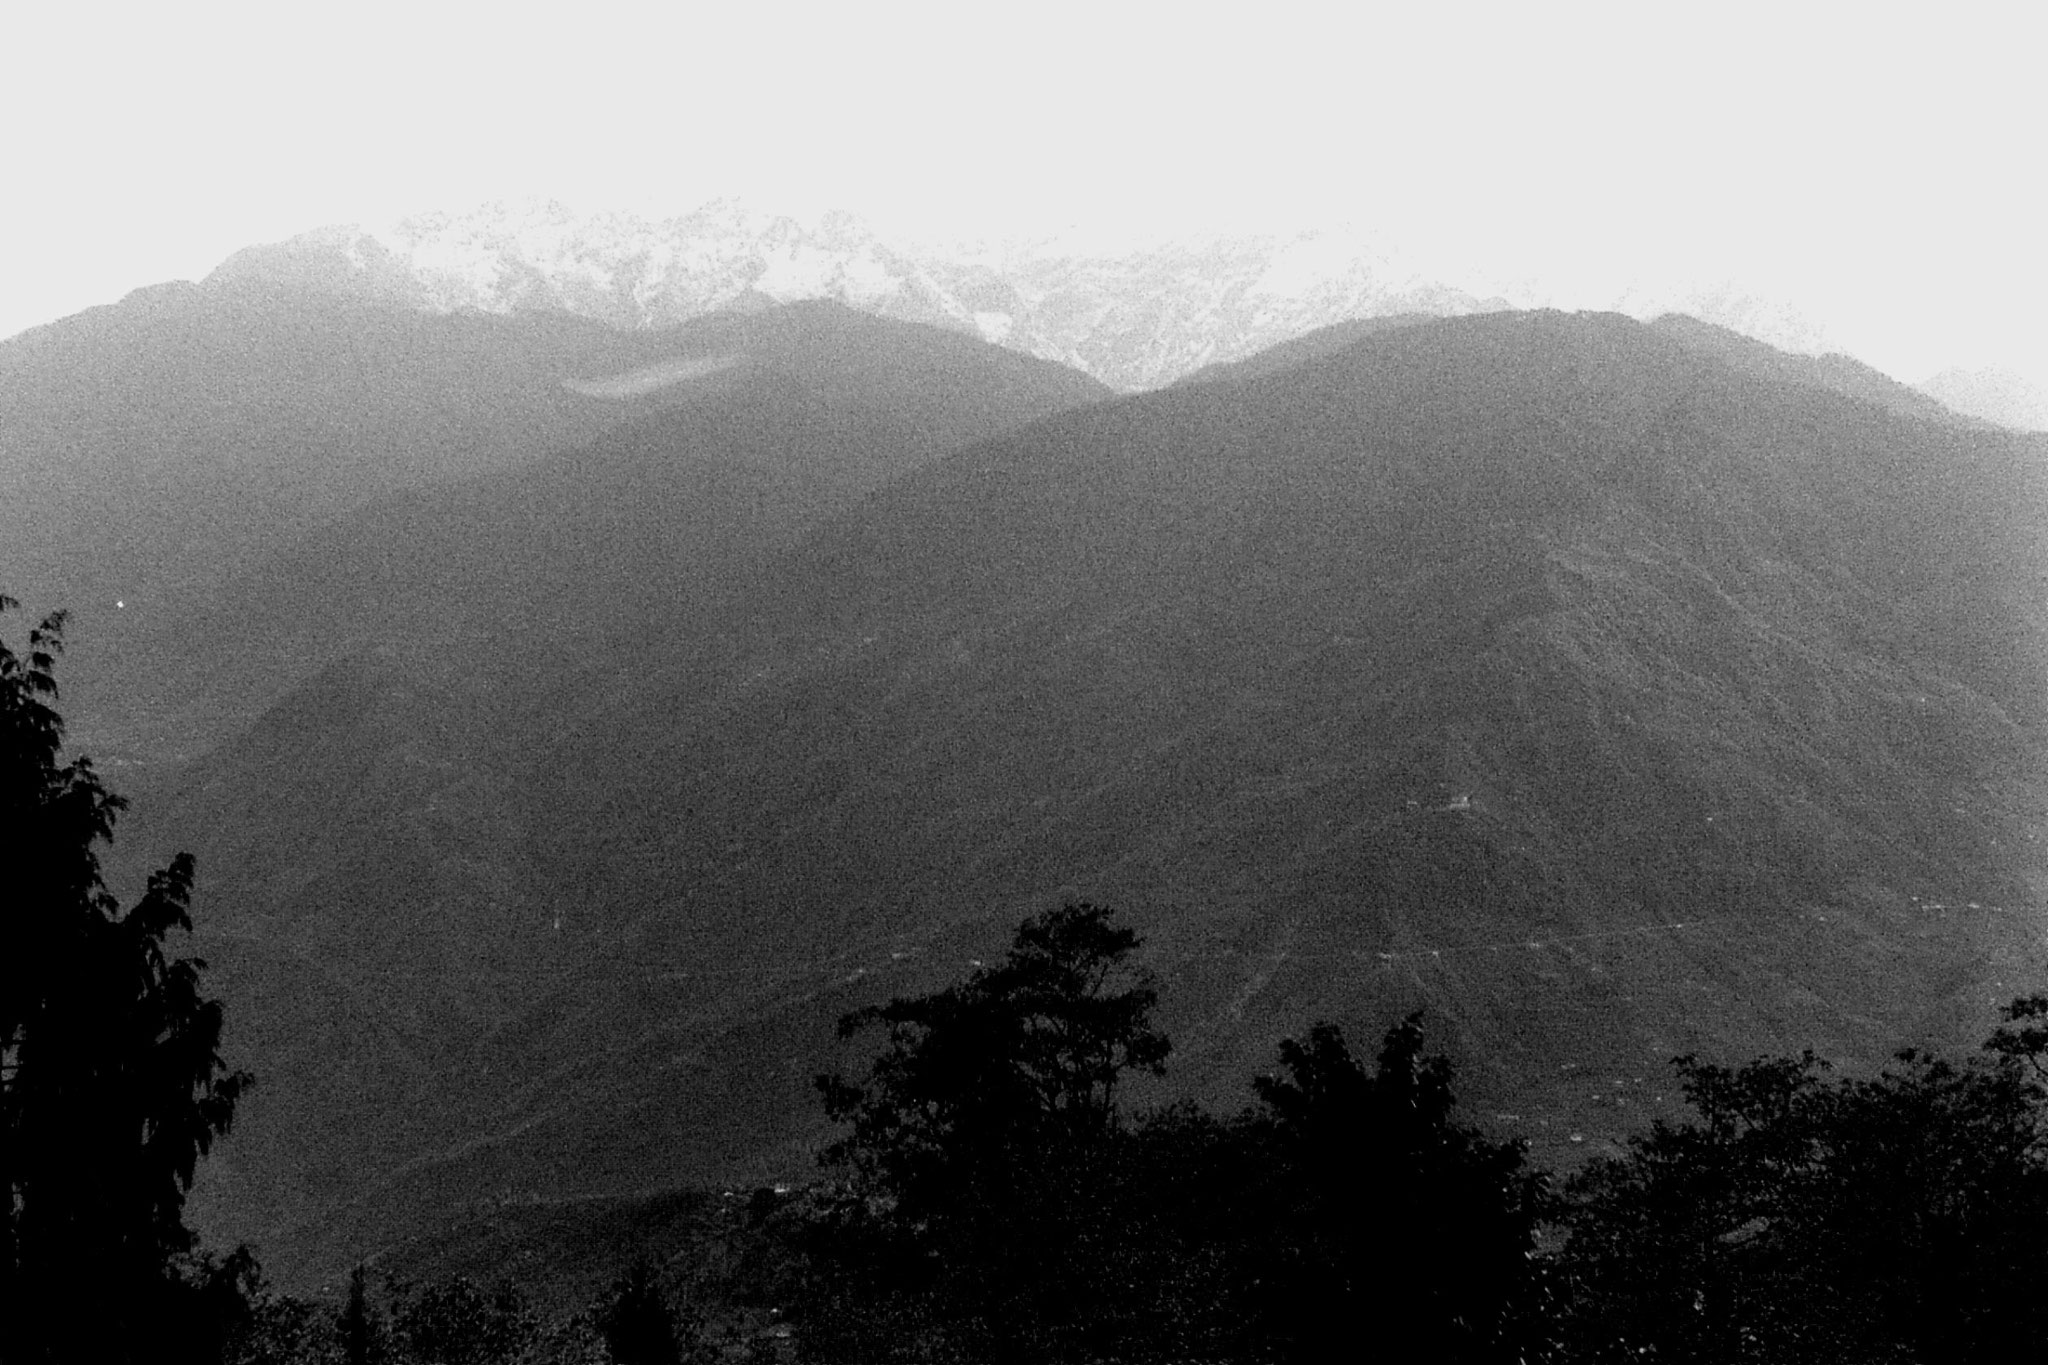 30/4/1990: 2: Pelling view towards Kanchenjunga